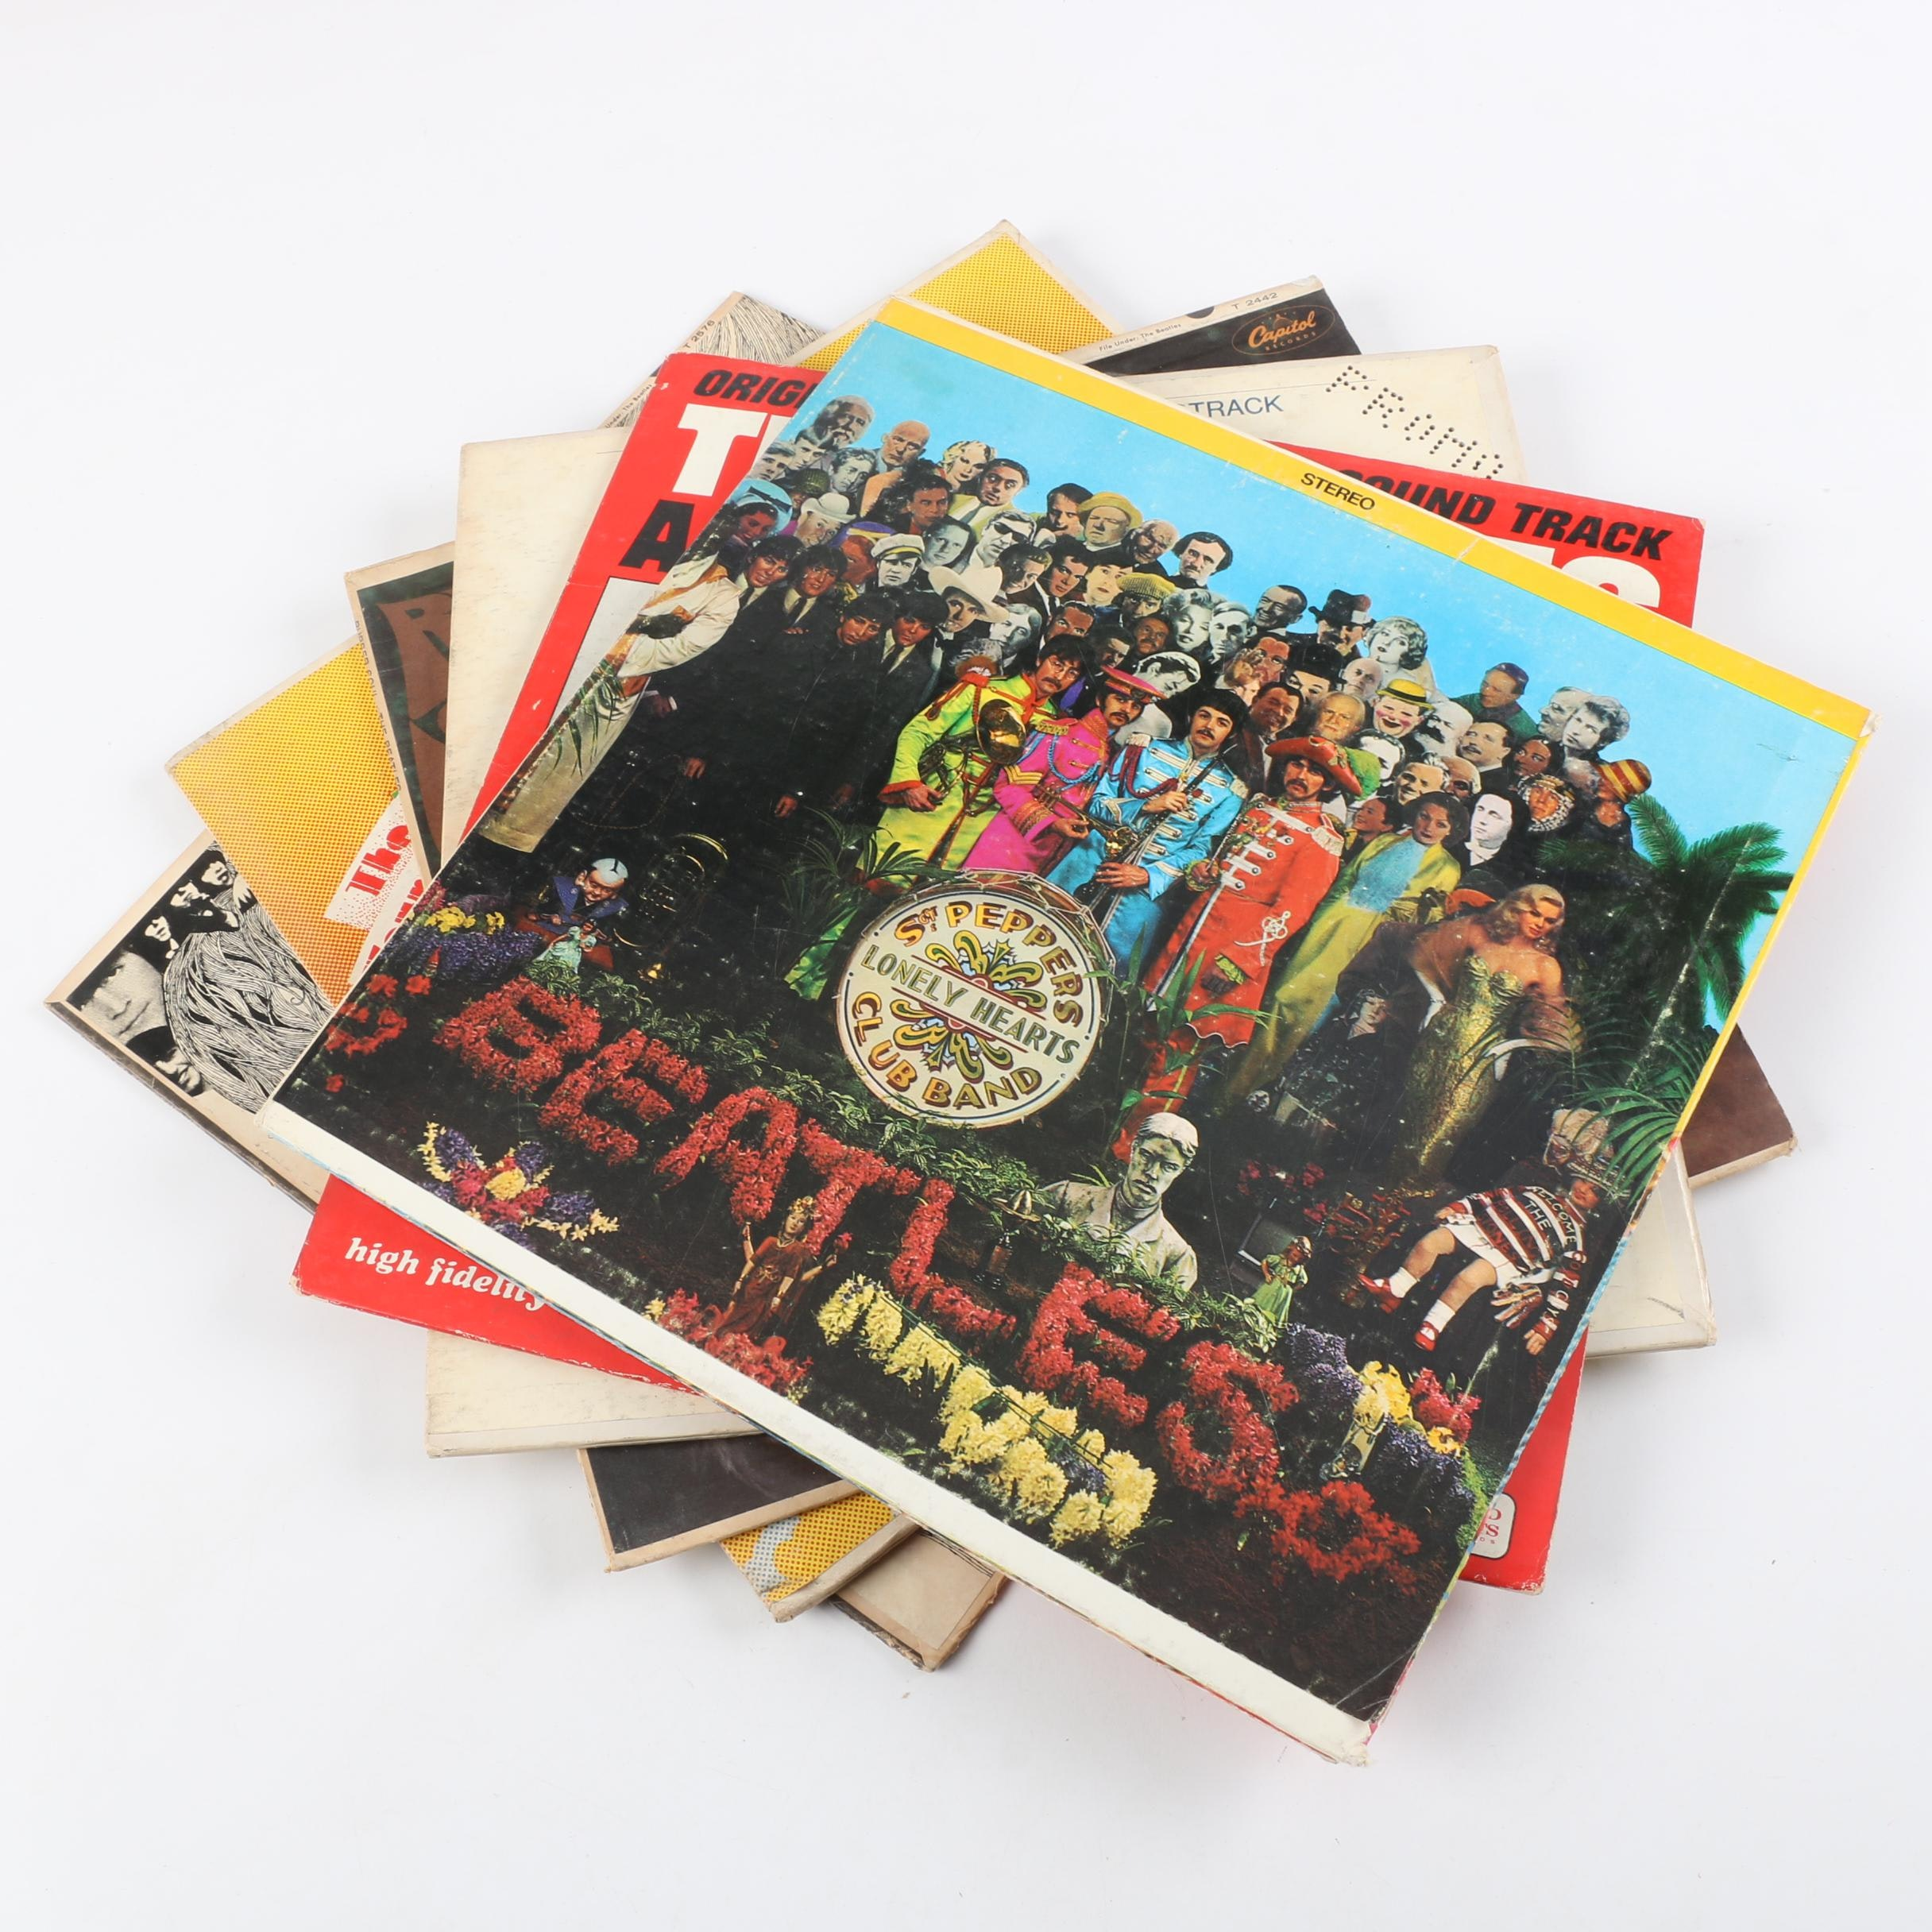 """The Beatles LPs, Including """"Sgt. Pepper's Lonely Hearts Club Band"""" With Cutouts"""